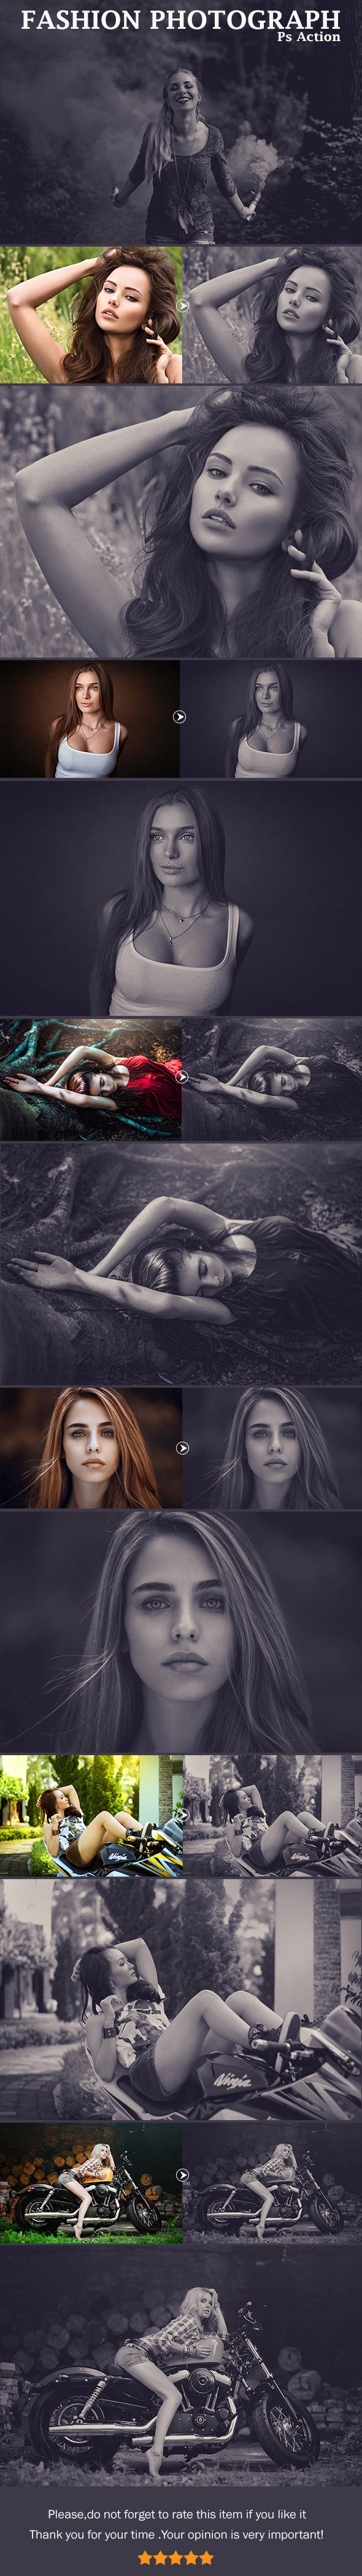 Photoshop Fashion Photograph Action - Photo Effects Actions. Download here: https://graphicriver.net/item/fashion-photograph/18901213?ref=yinkira